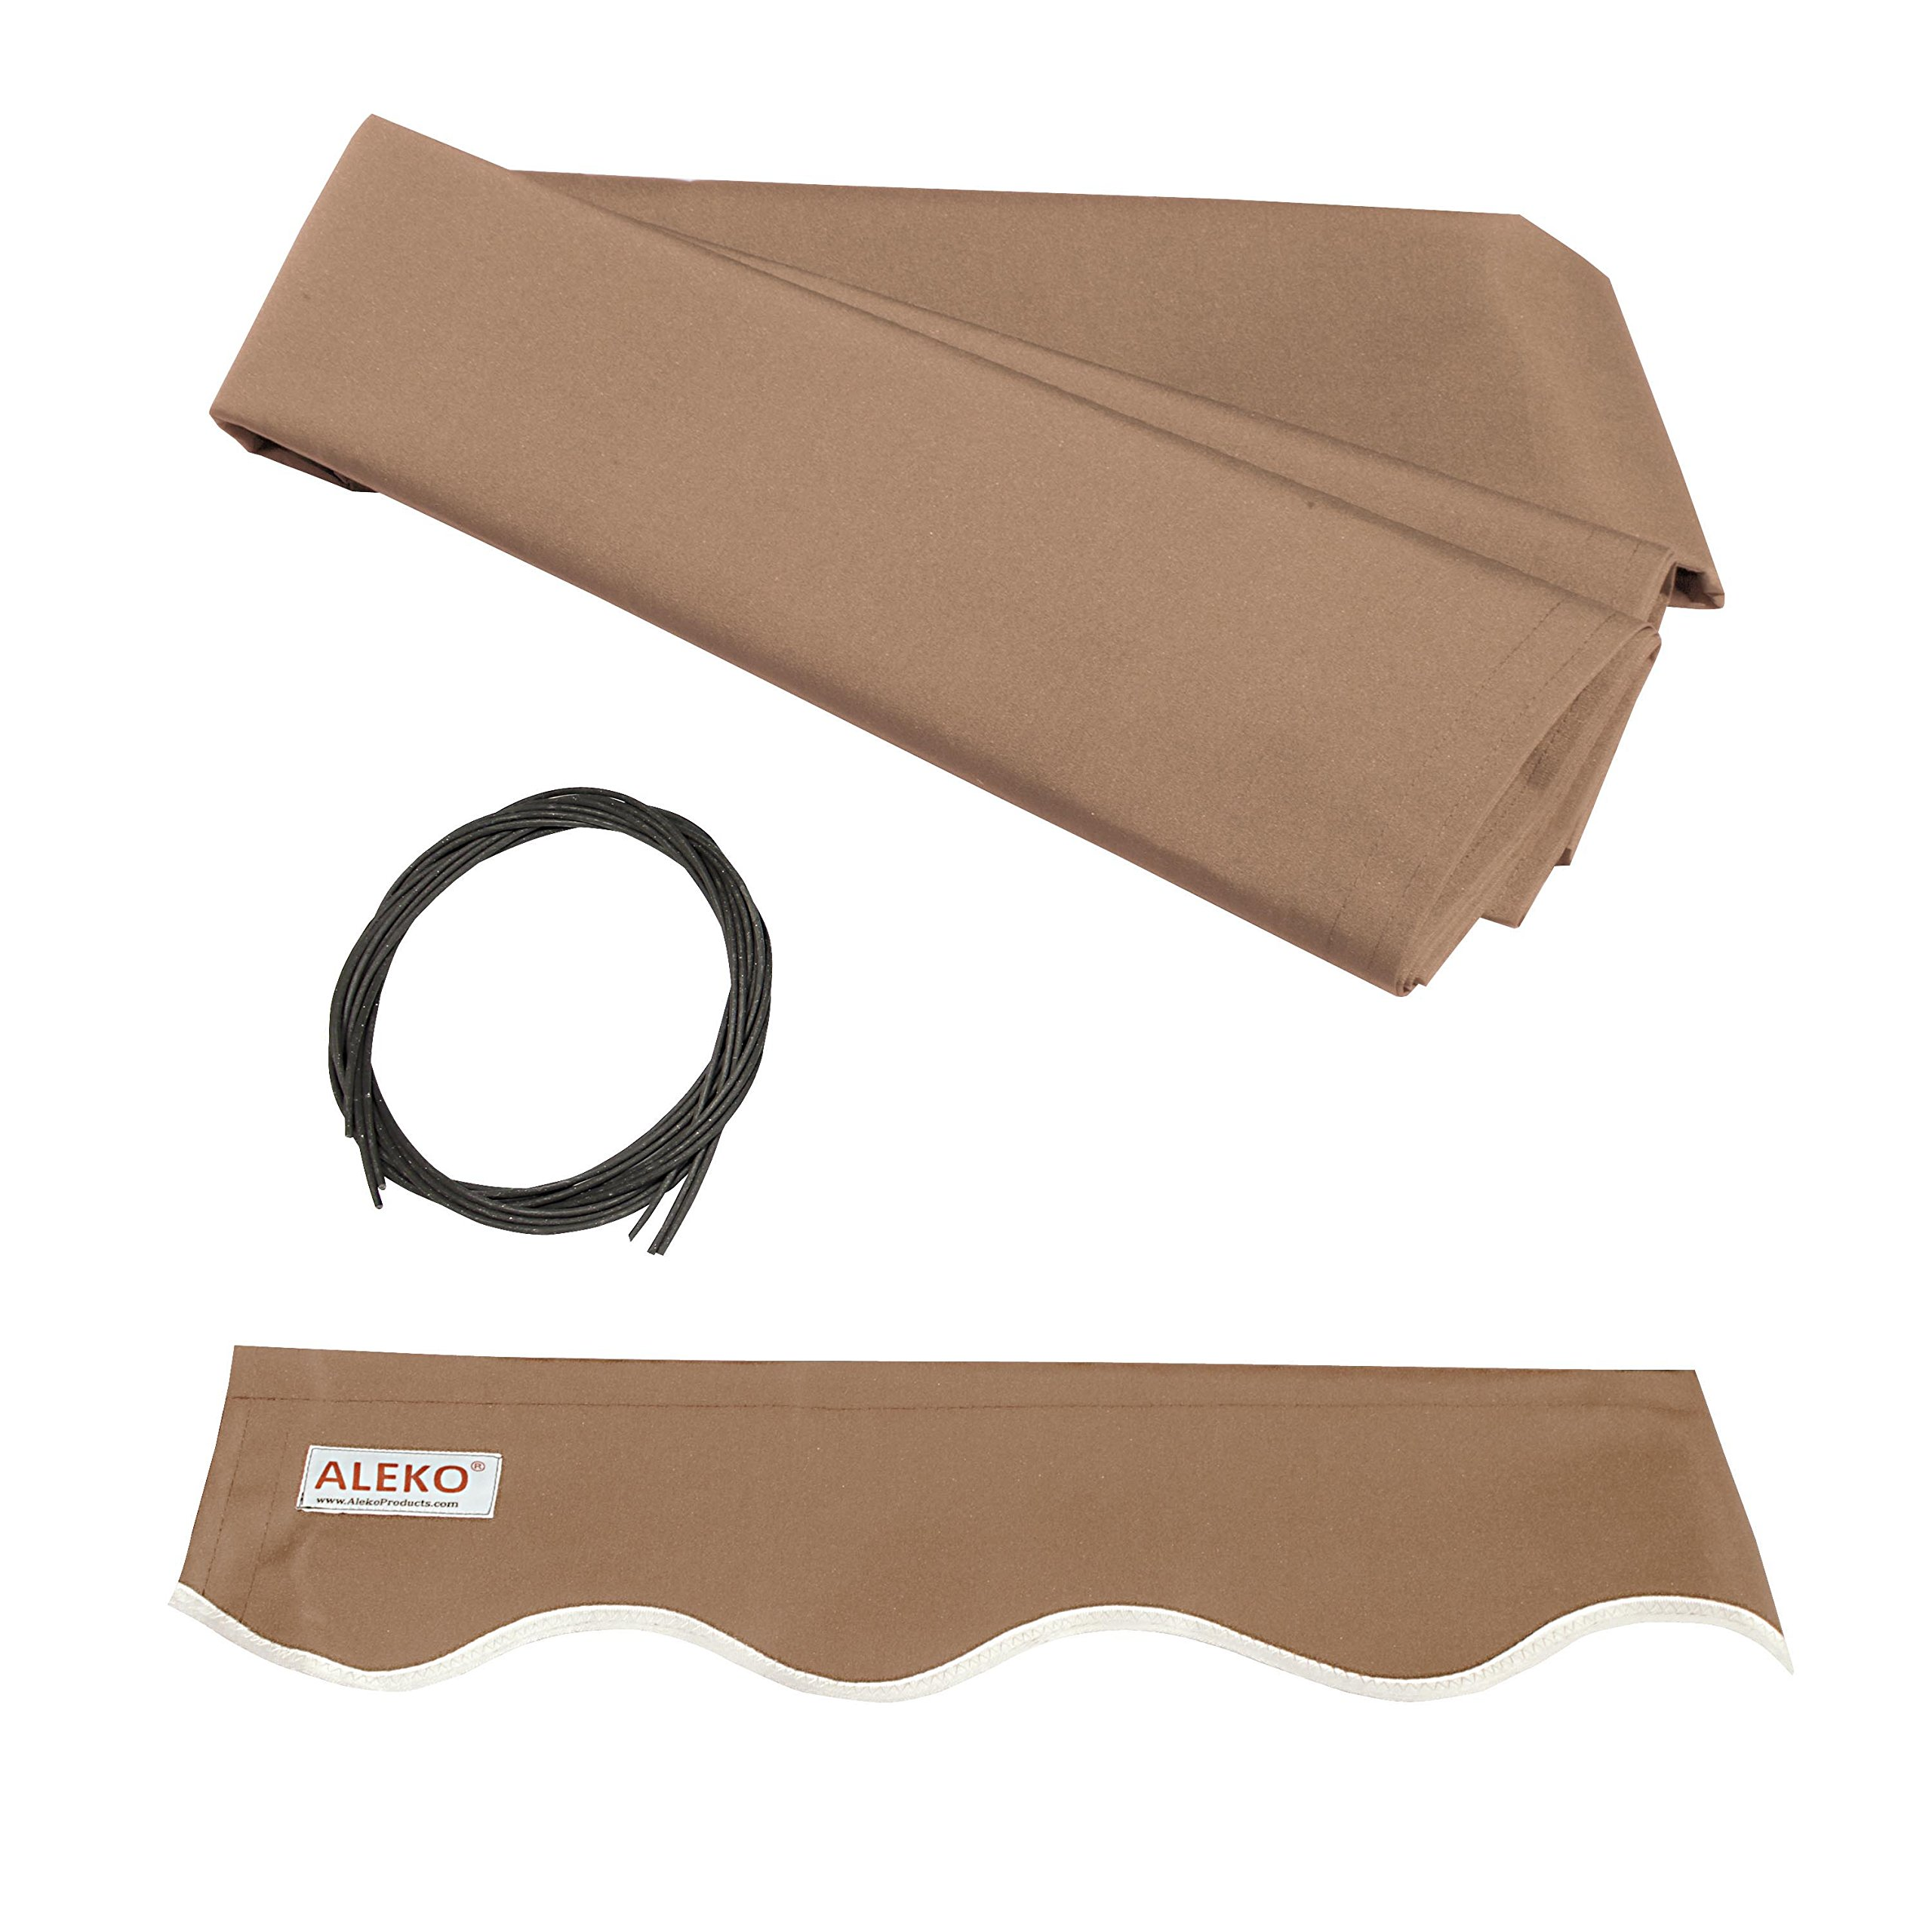 ALEKO FAB20X10SAND31 Retractable Awning Fabric Replacement 20 x 10 Feet Sand